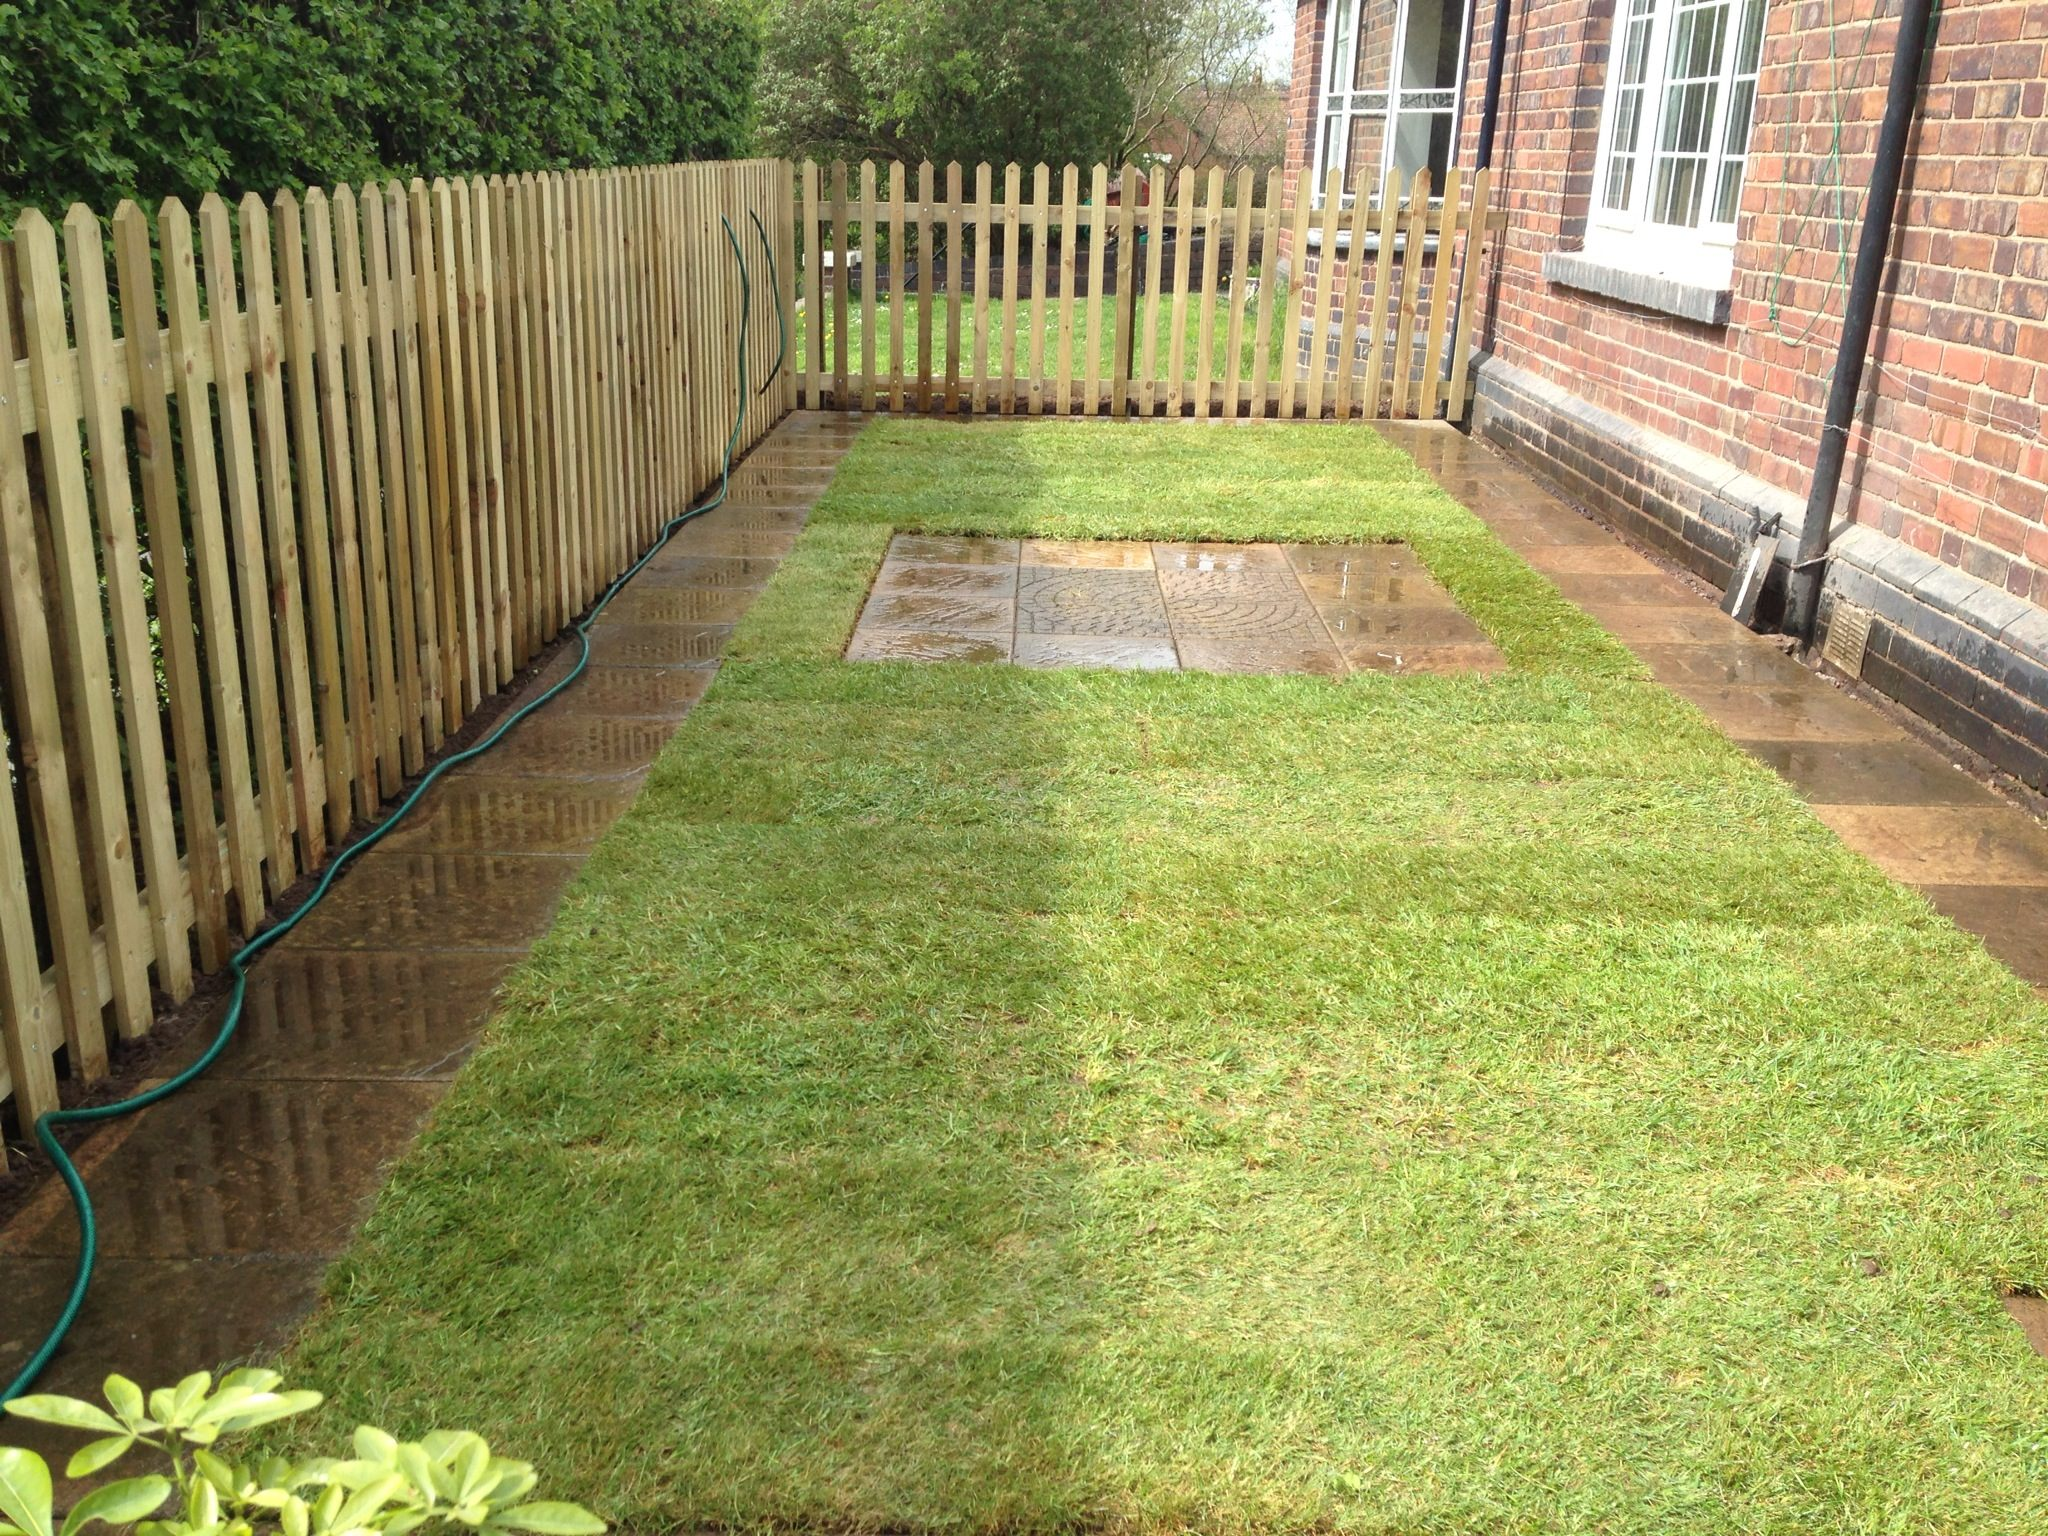 New lawn with picket fencing, small paved seating area and paved lawn edging